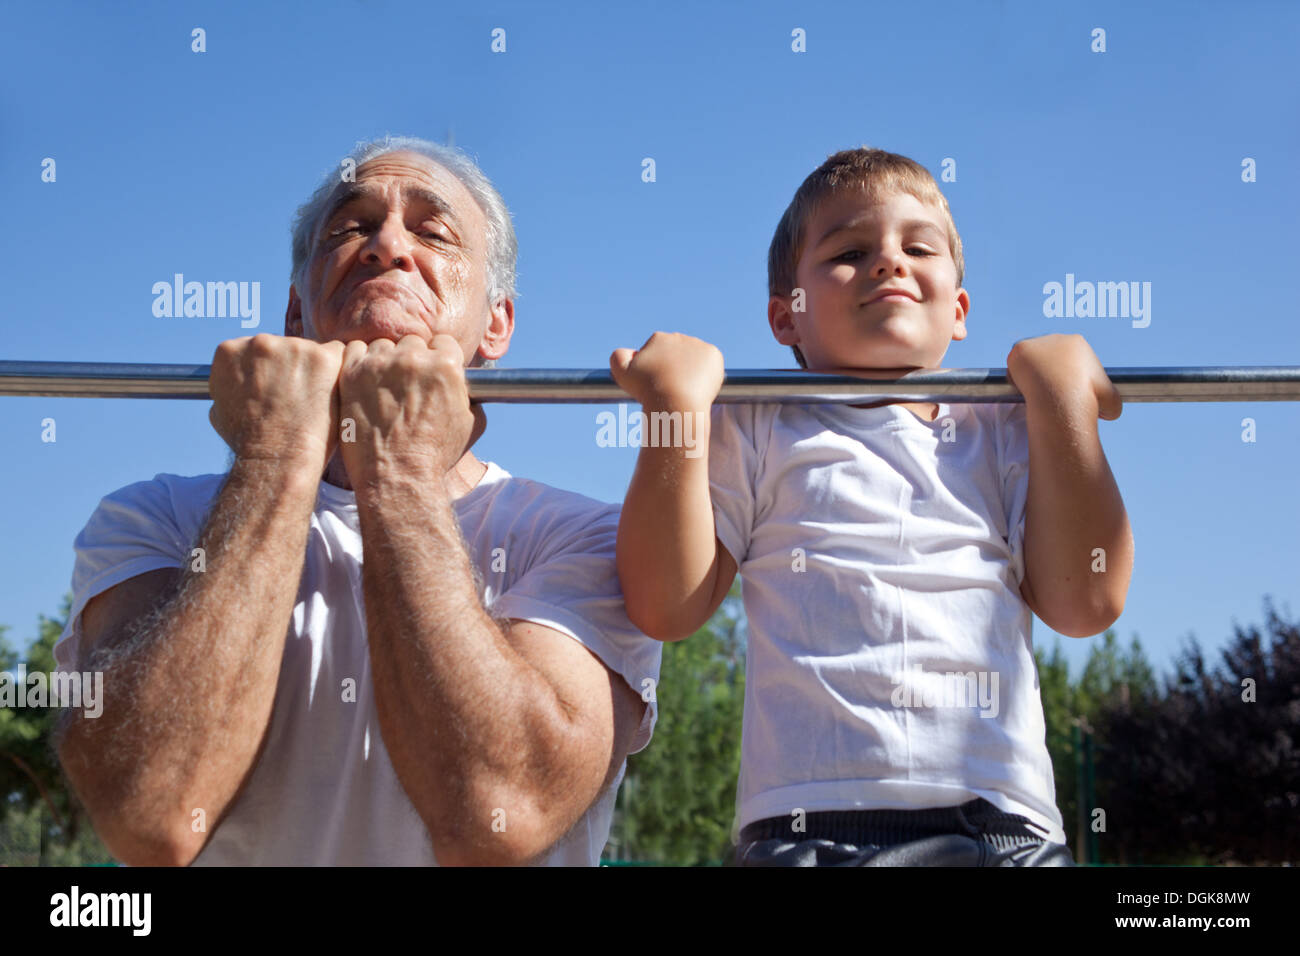 Man and grandson doing chin-ups - Stock Image